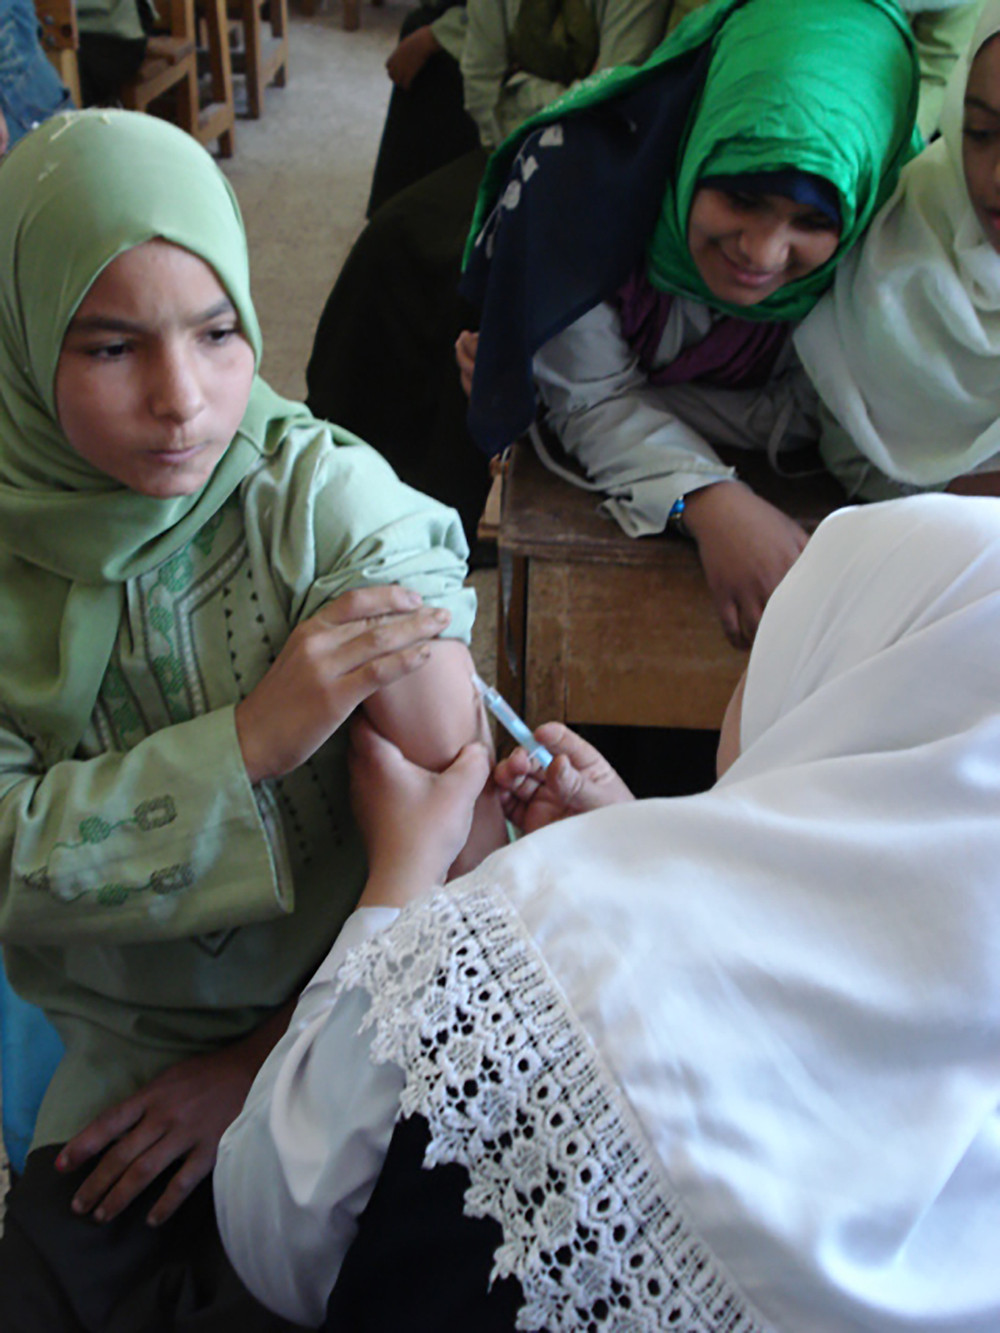 Photo of girl with light skin-tone and light green hijab receiving a shot via a hypodermic needle from a woman with light skin-tone and a white hijab.  Another girl wearing a dark green hijab is in a crowd of other children.